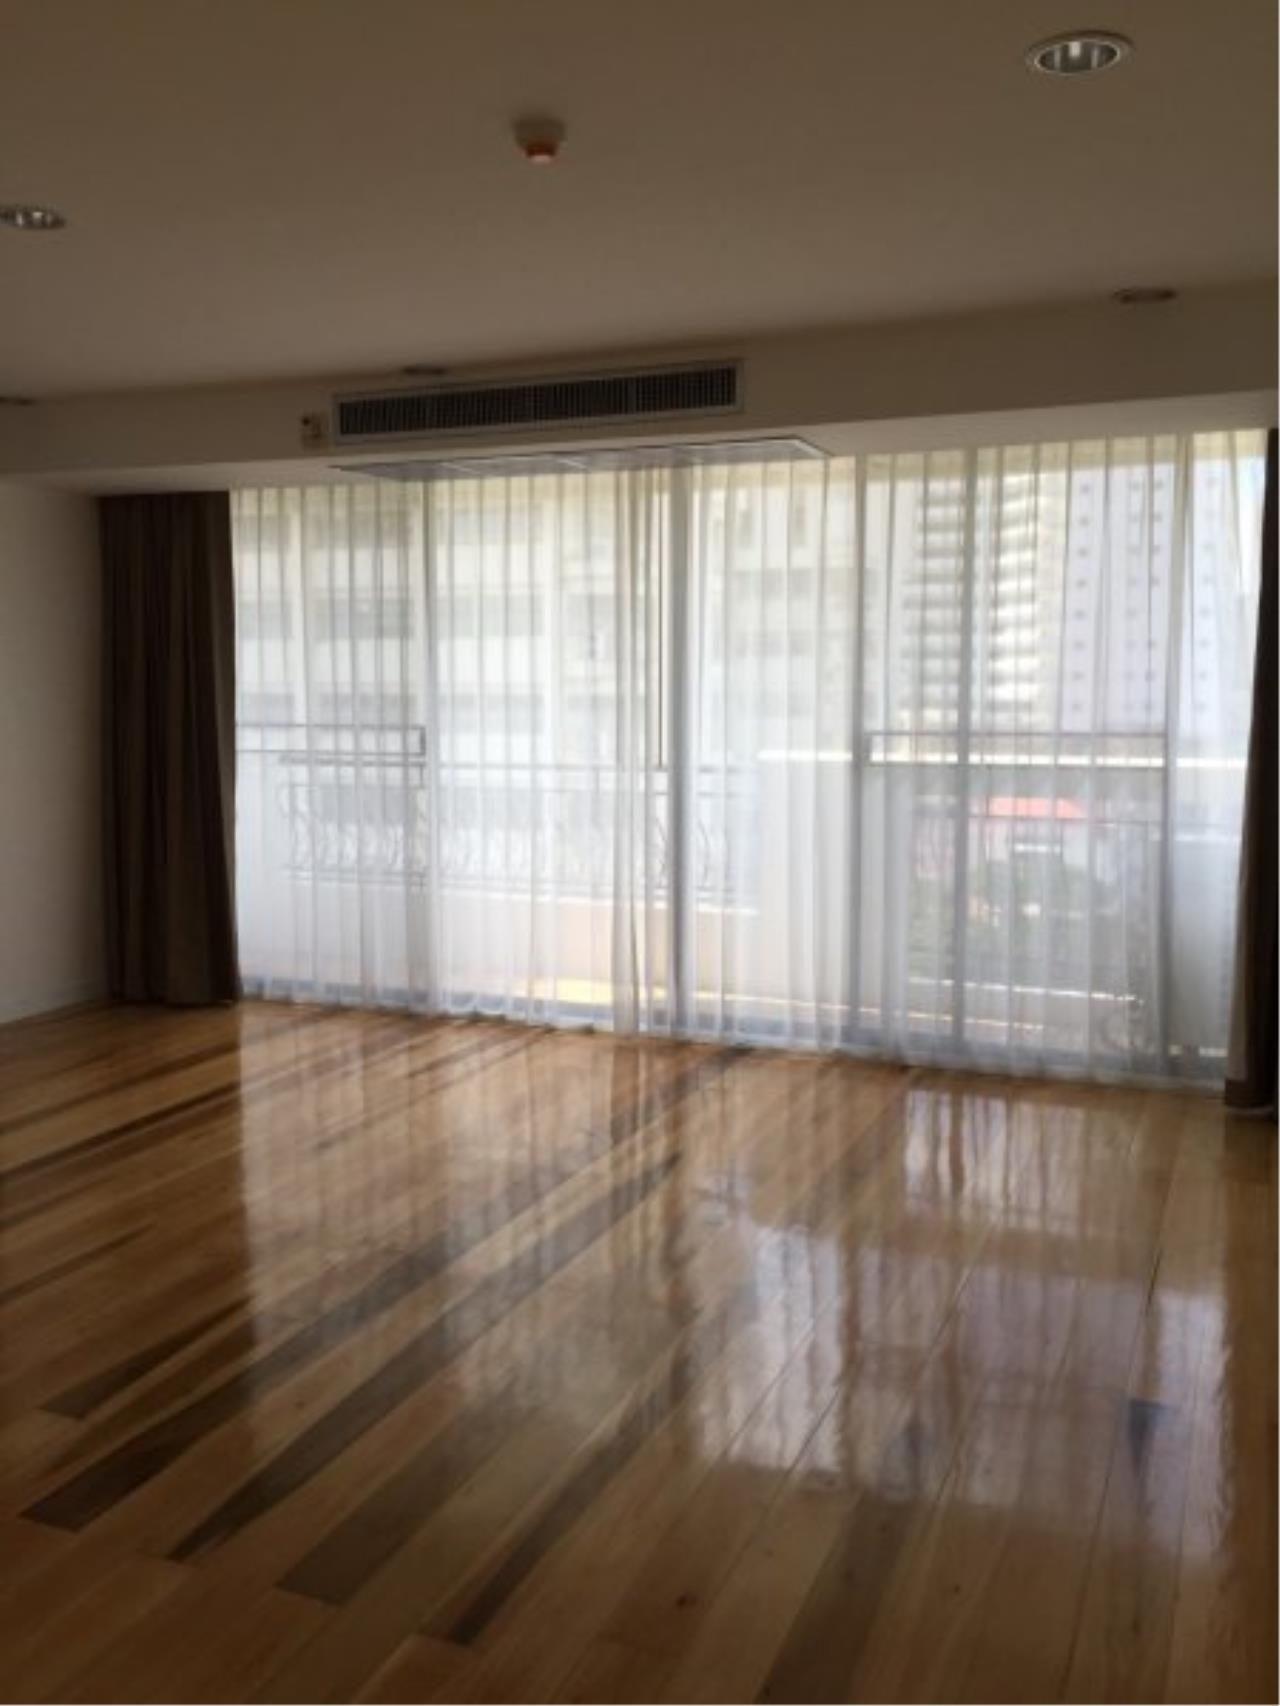 Piri Property Agency's Huge 3 Bedrooms in the Prime Mansion Condo for sale on high floor 5